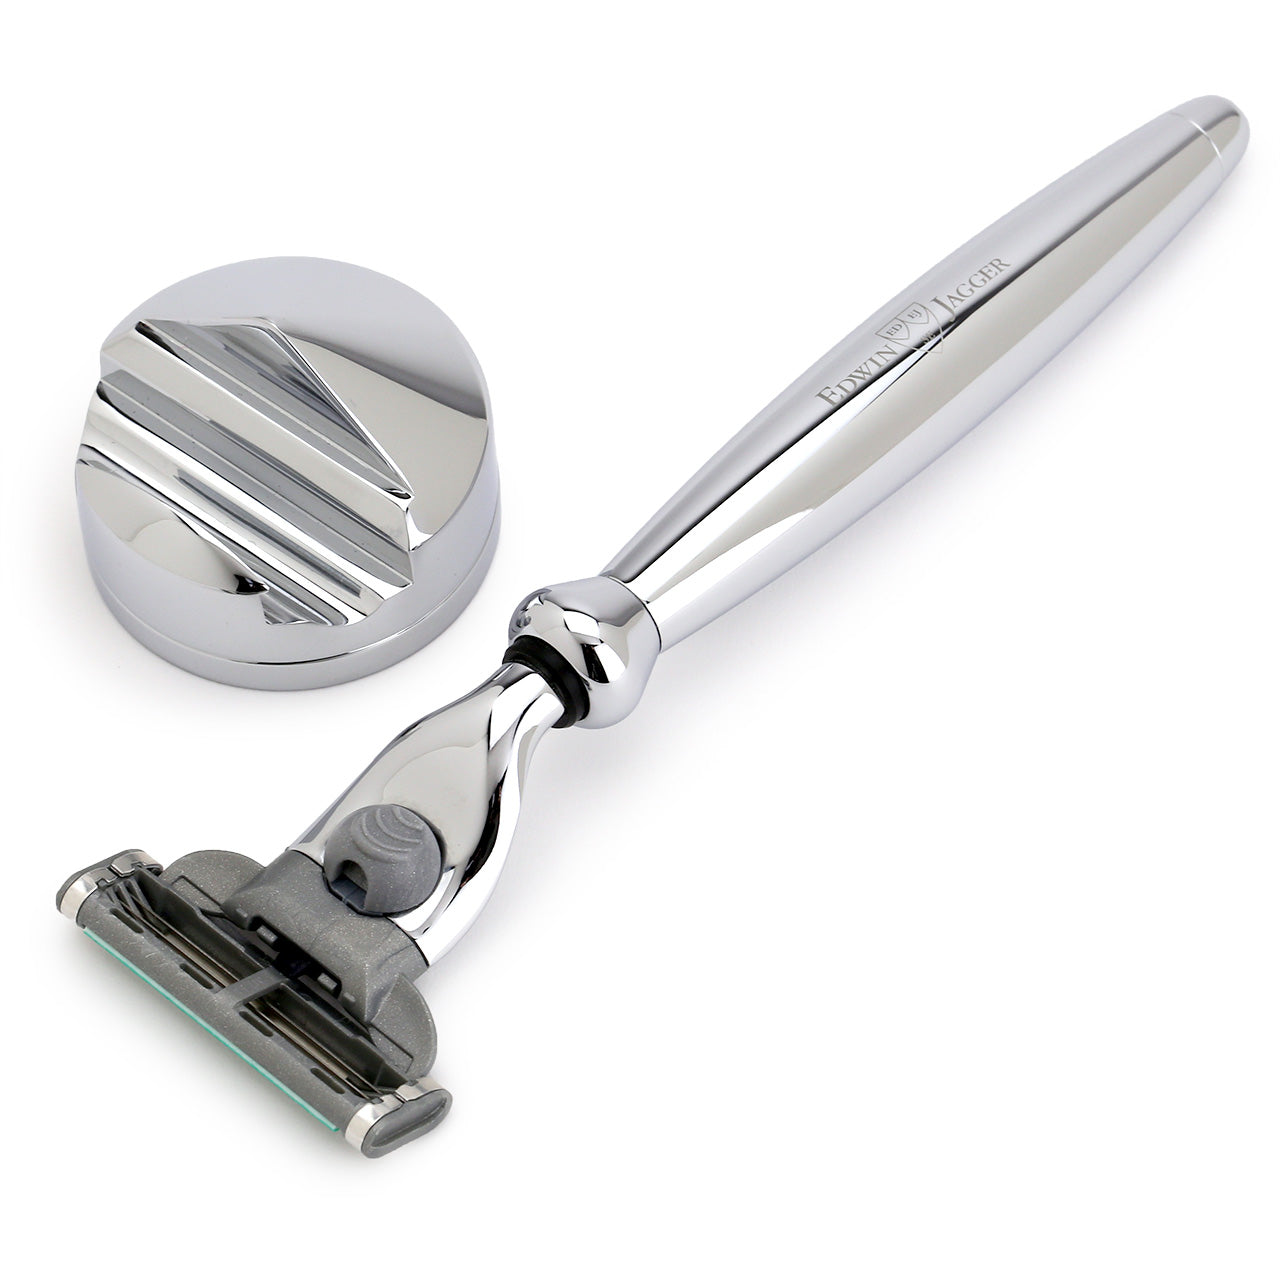 Edwin Jagger Mach3 Razor & Stand Smooth Chrome Bulbous